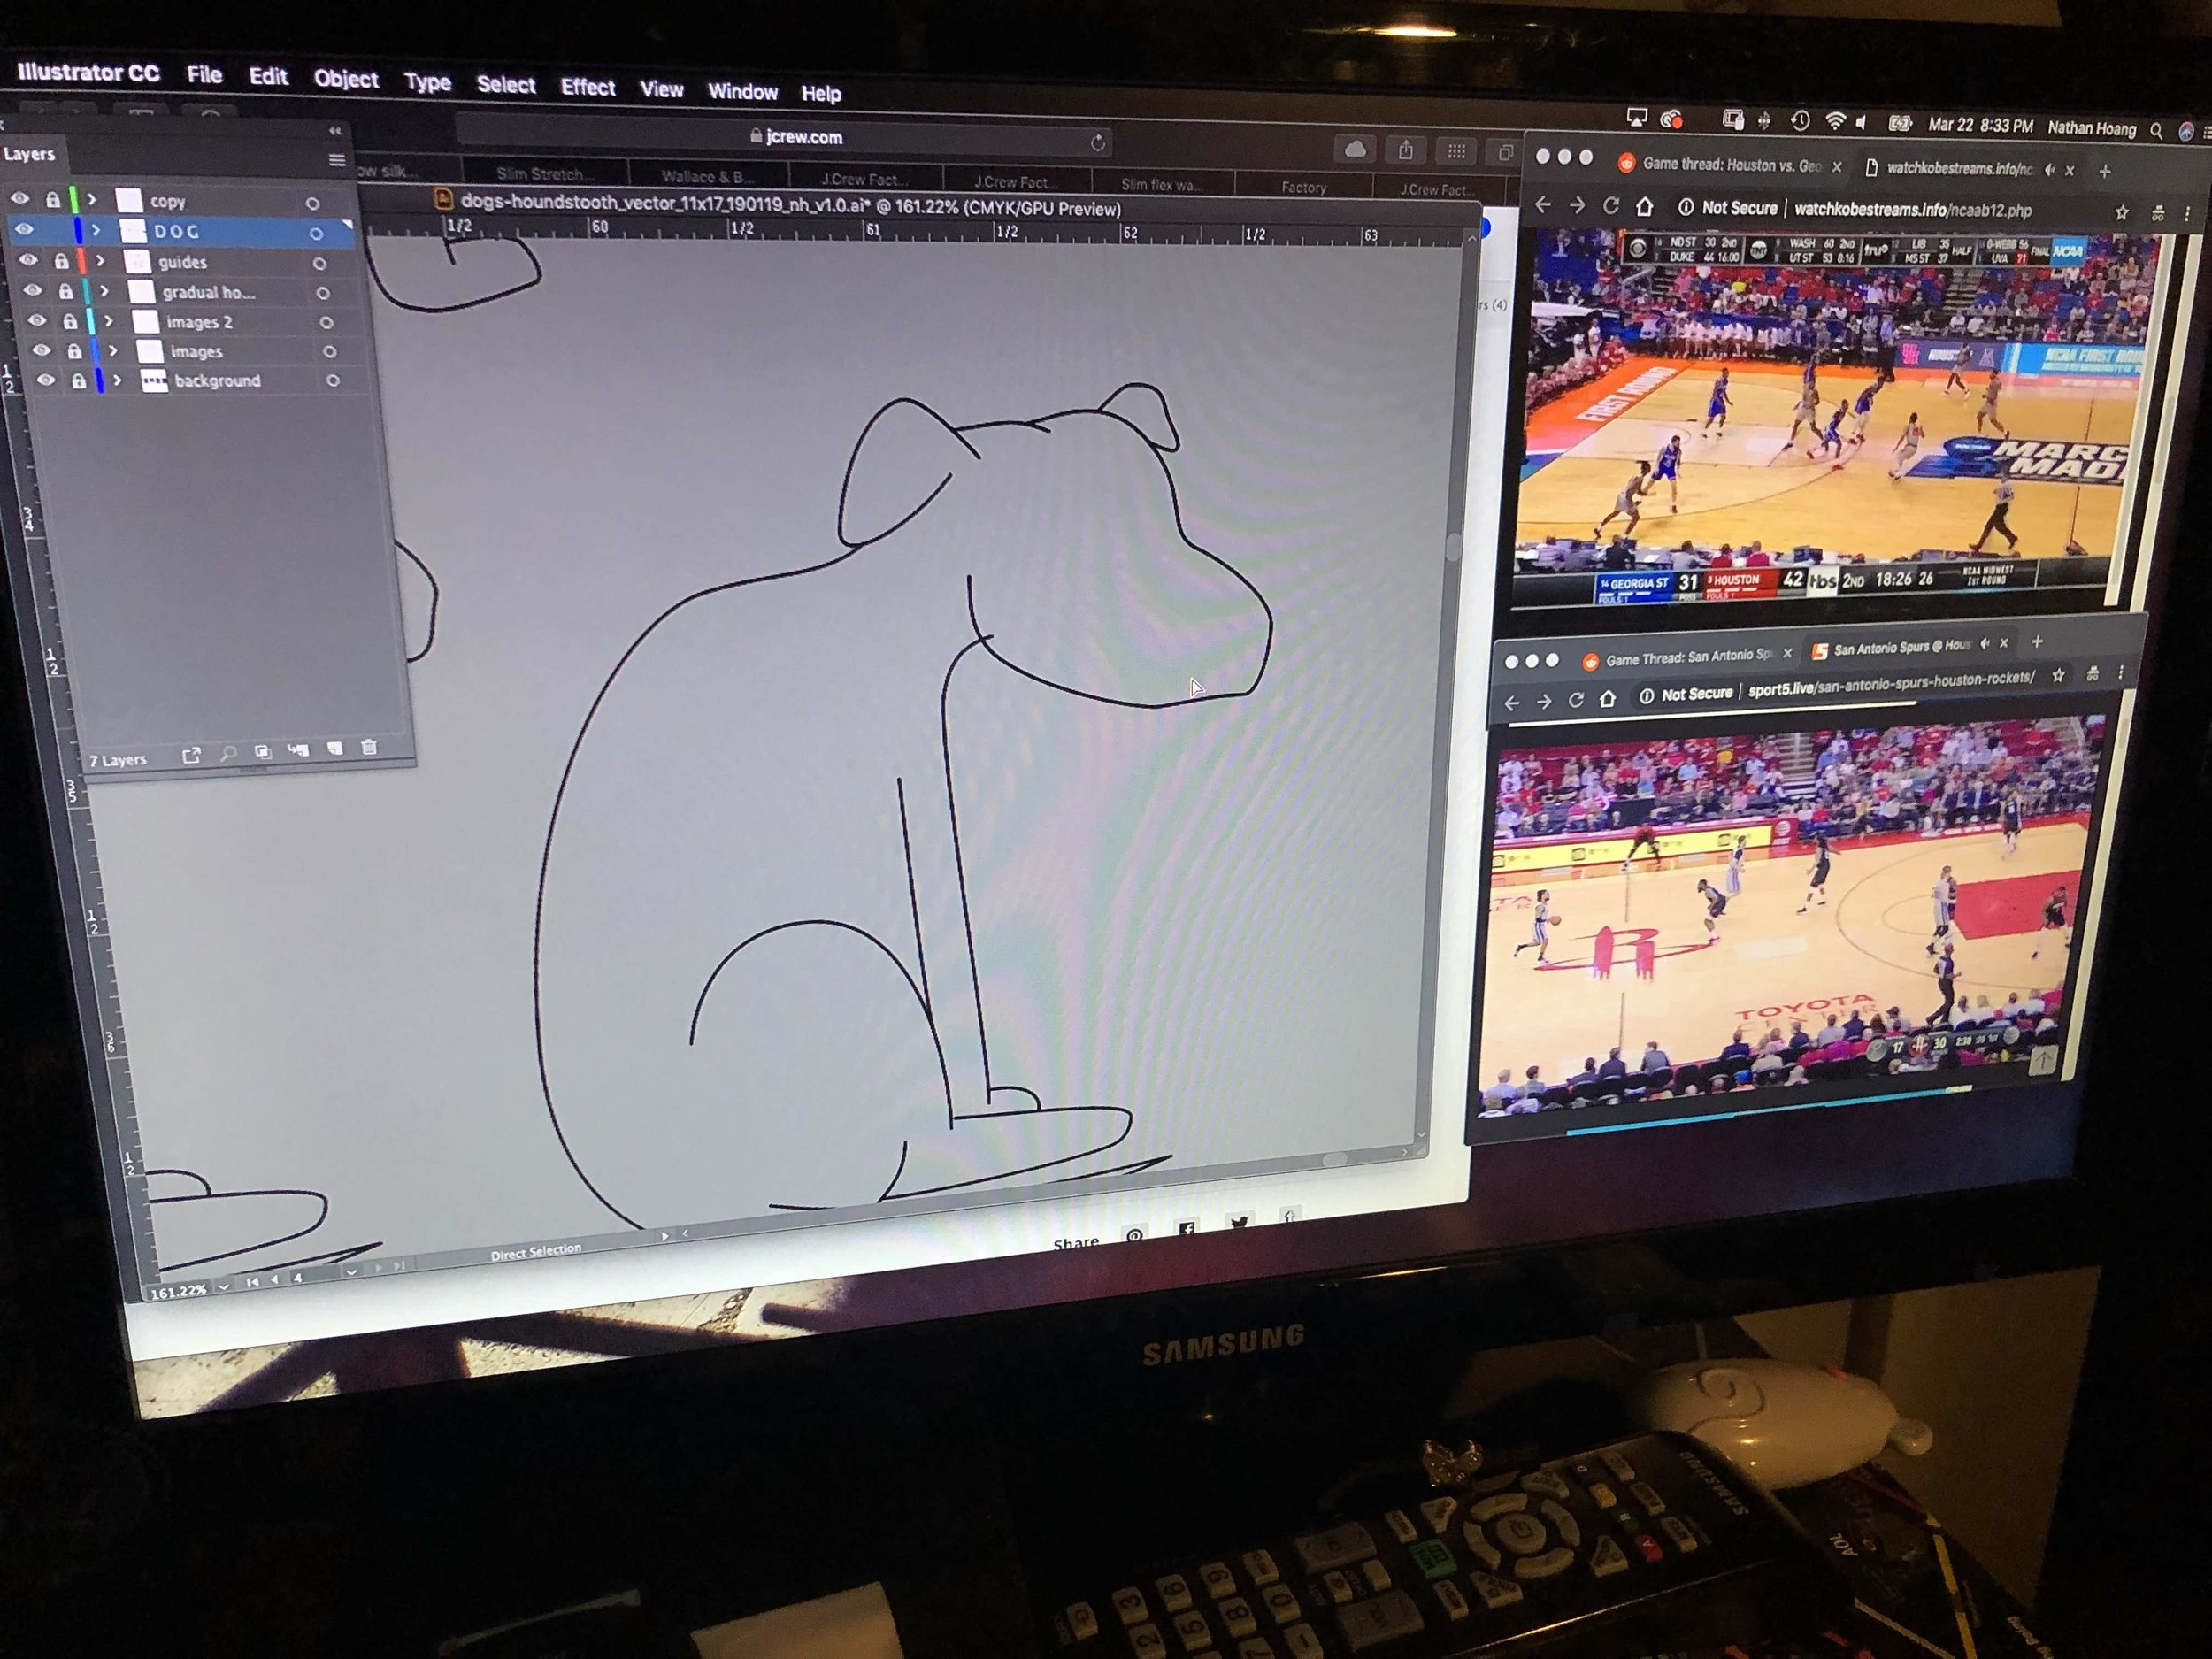 Trying to draw a dog in Illustrator while watching simultaneous Houston basketball games (one in NCAA March Madness, and there other in an NBA regular season) is hard.